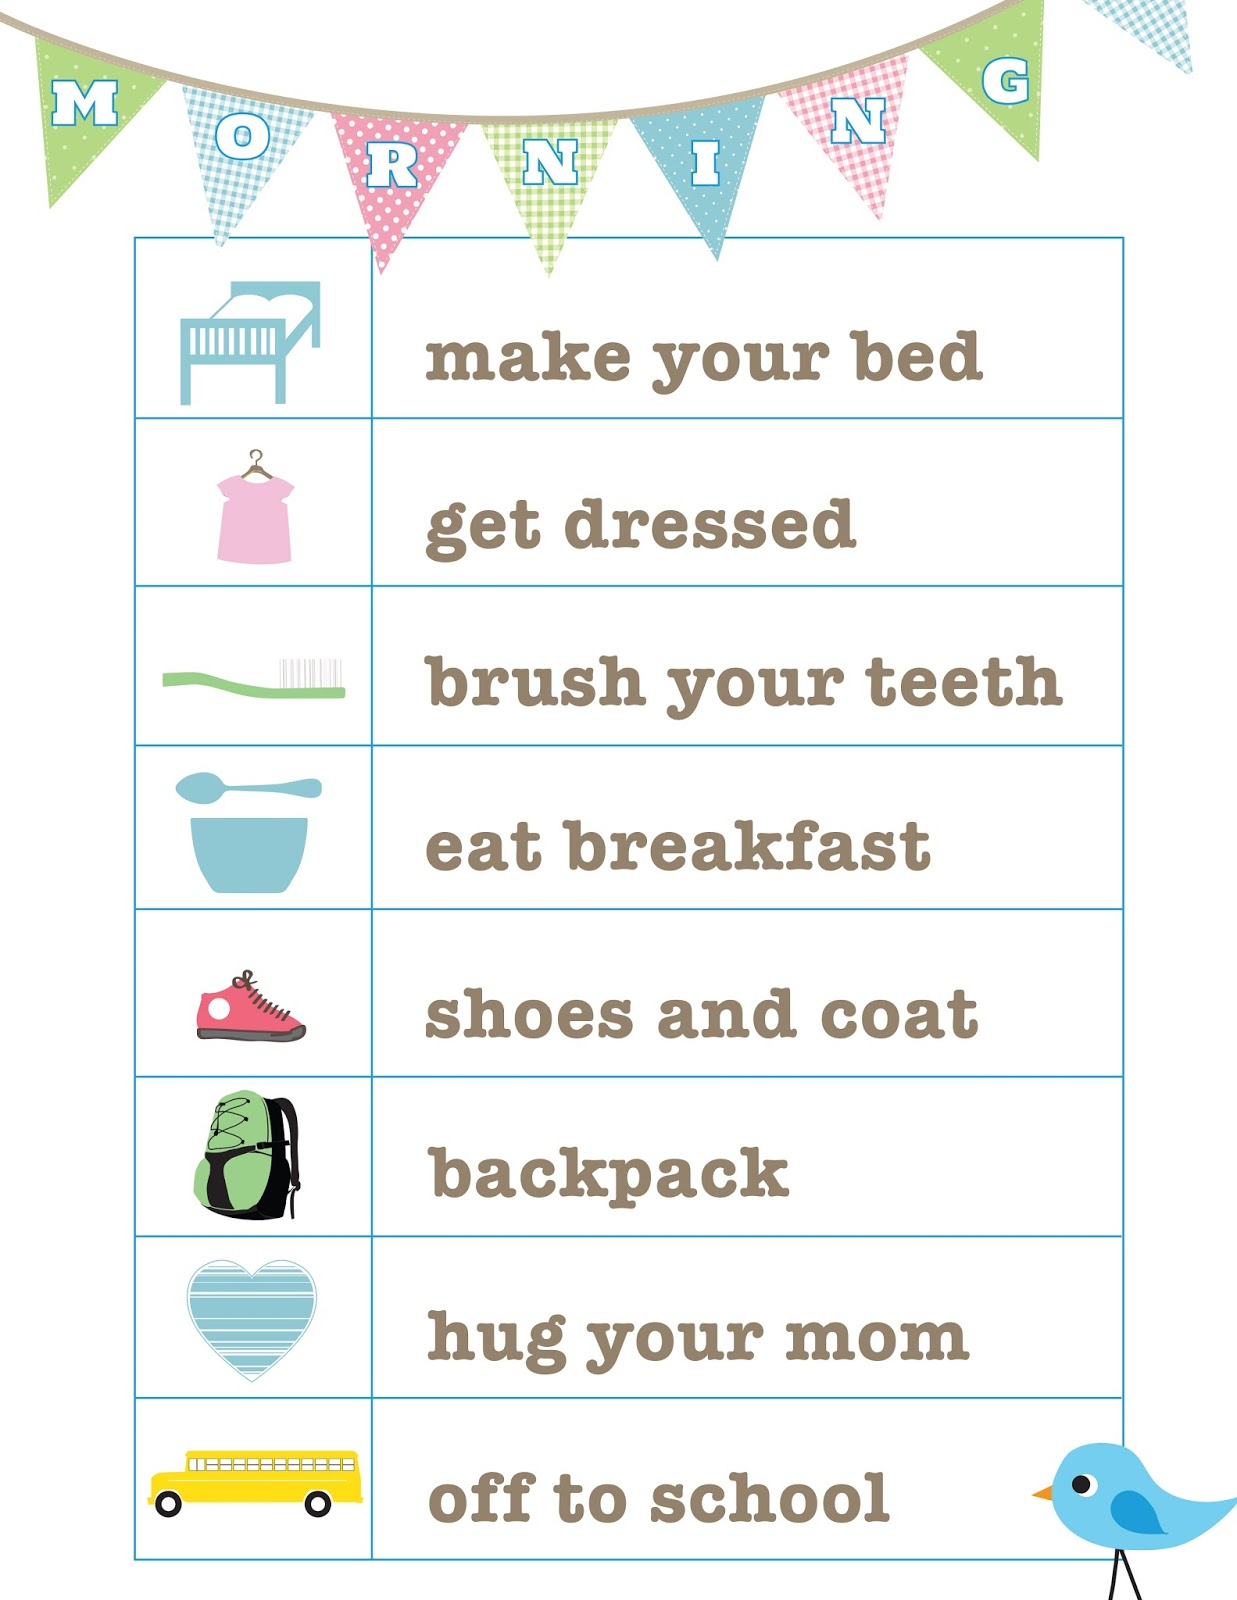 Hilaire image pertaining to morning routine printable